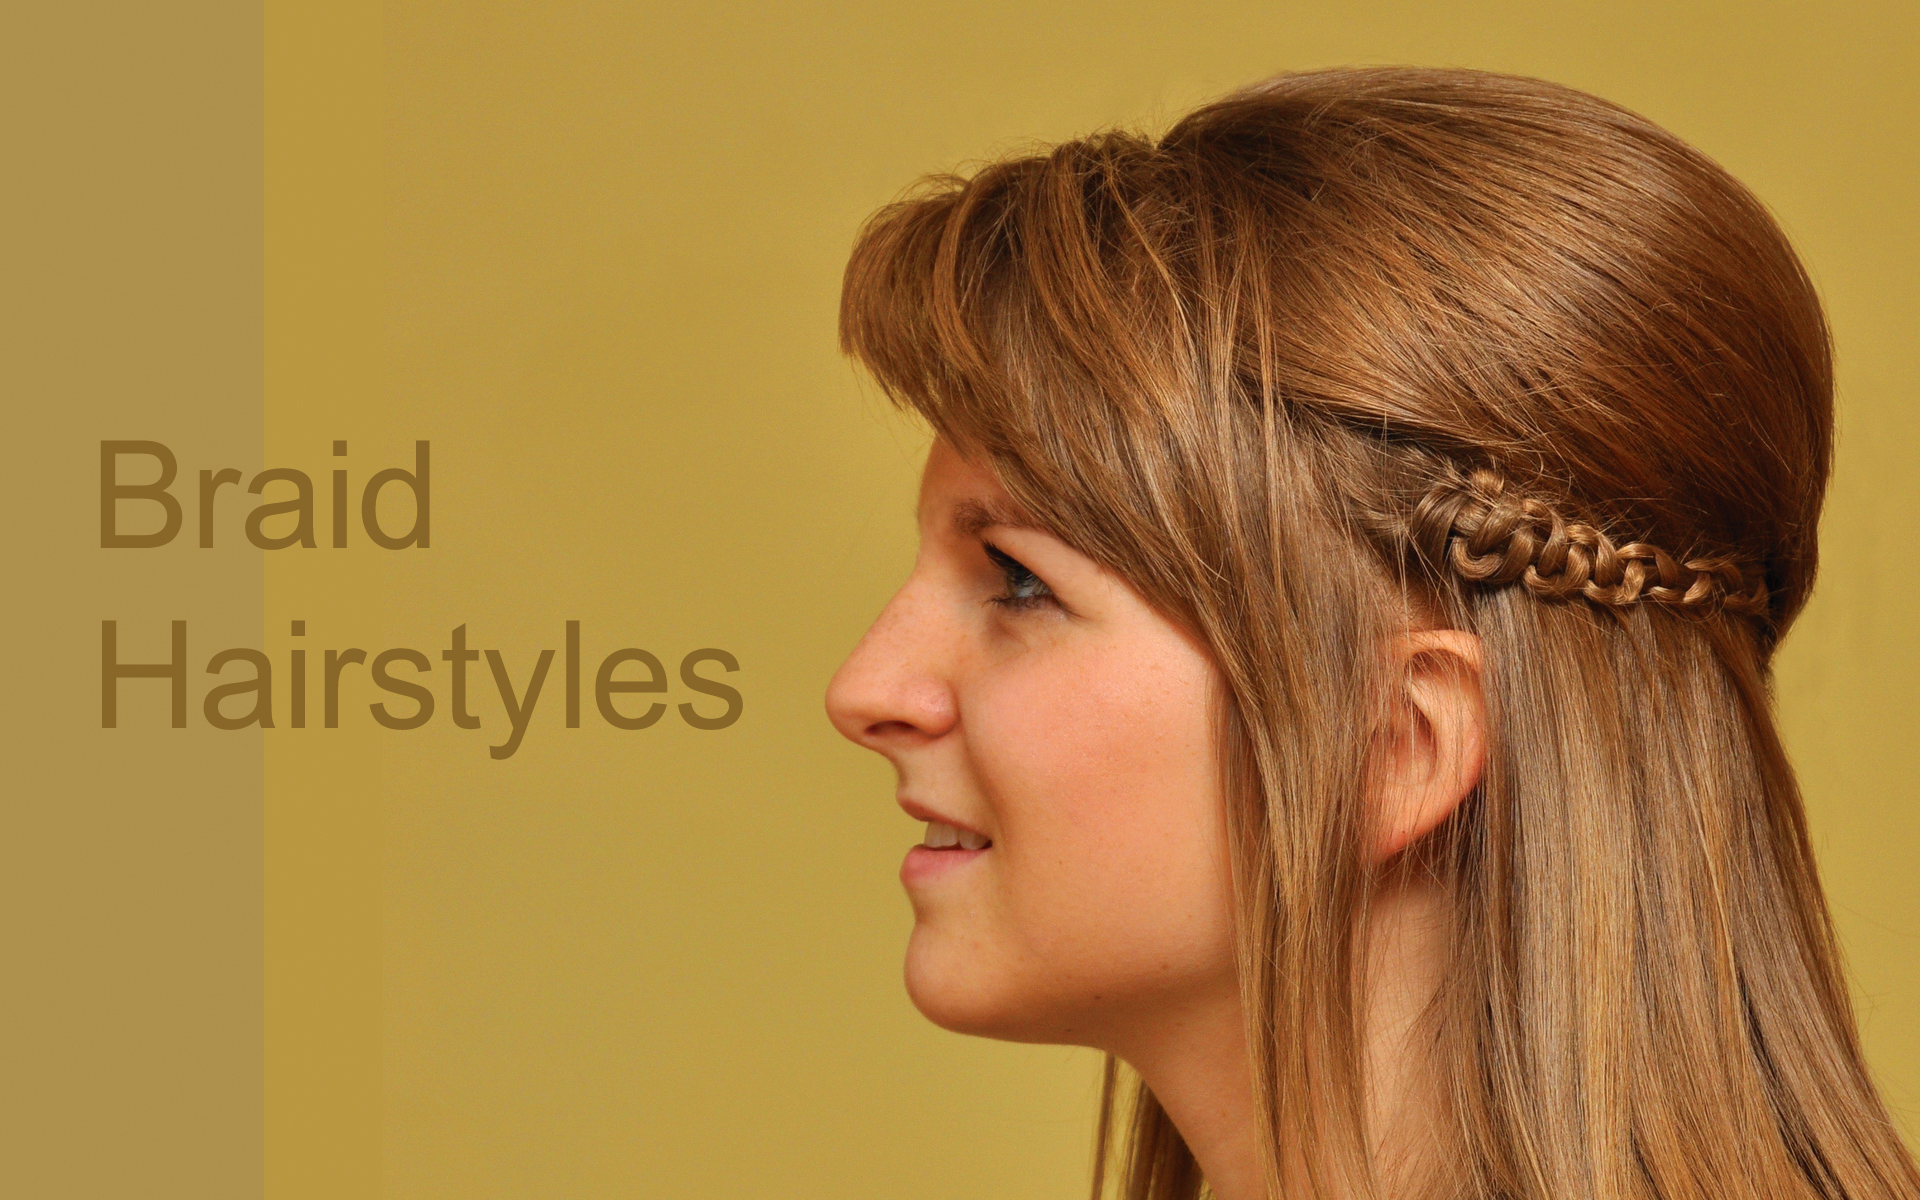 Braided Hairstyles Wallpaper - Hairstyle Archives